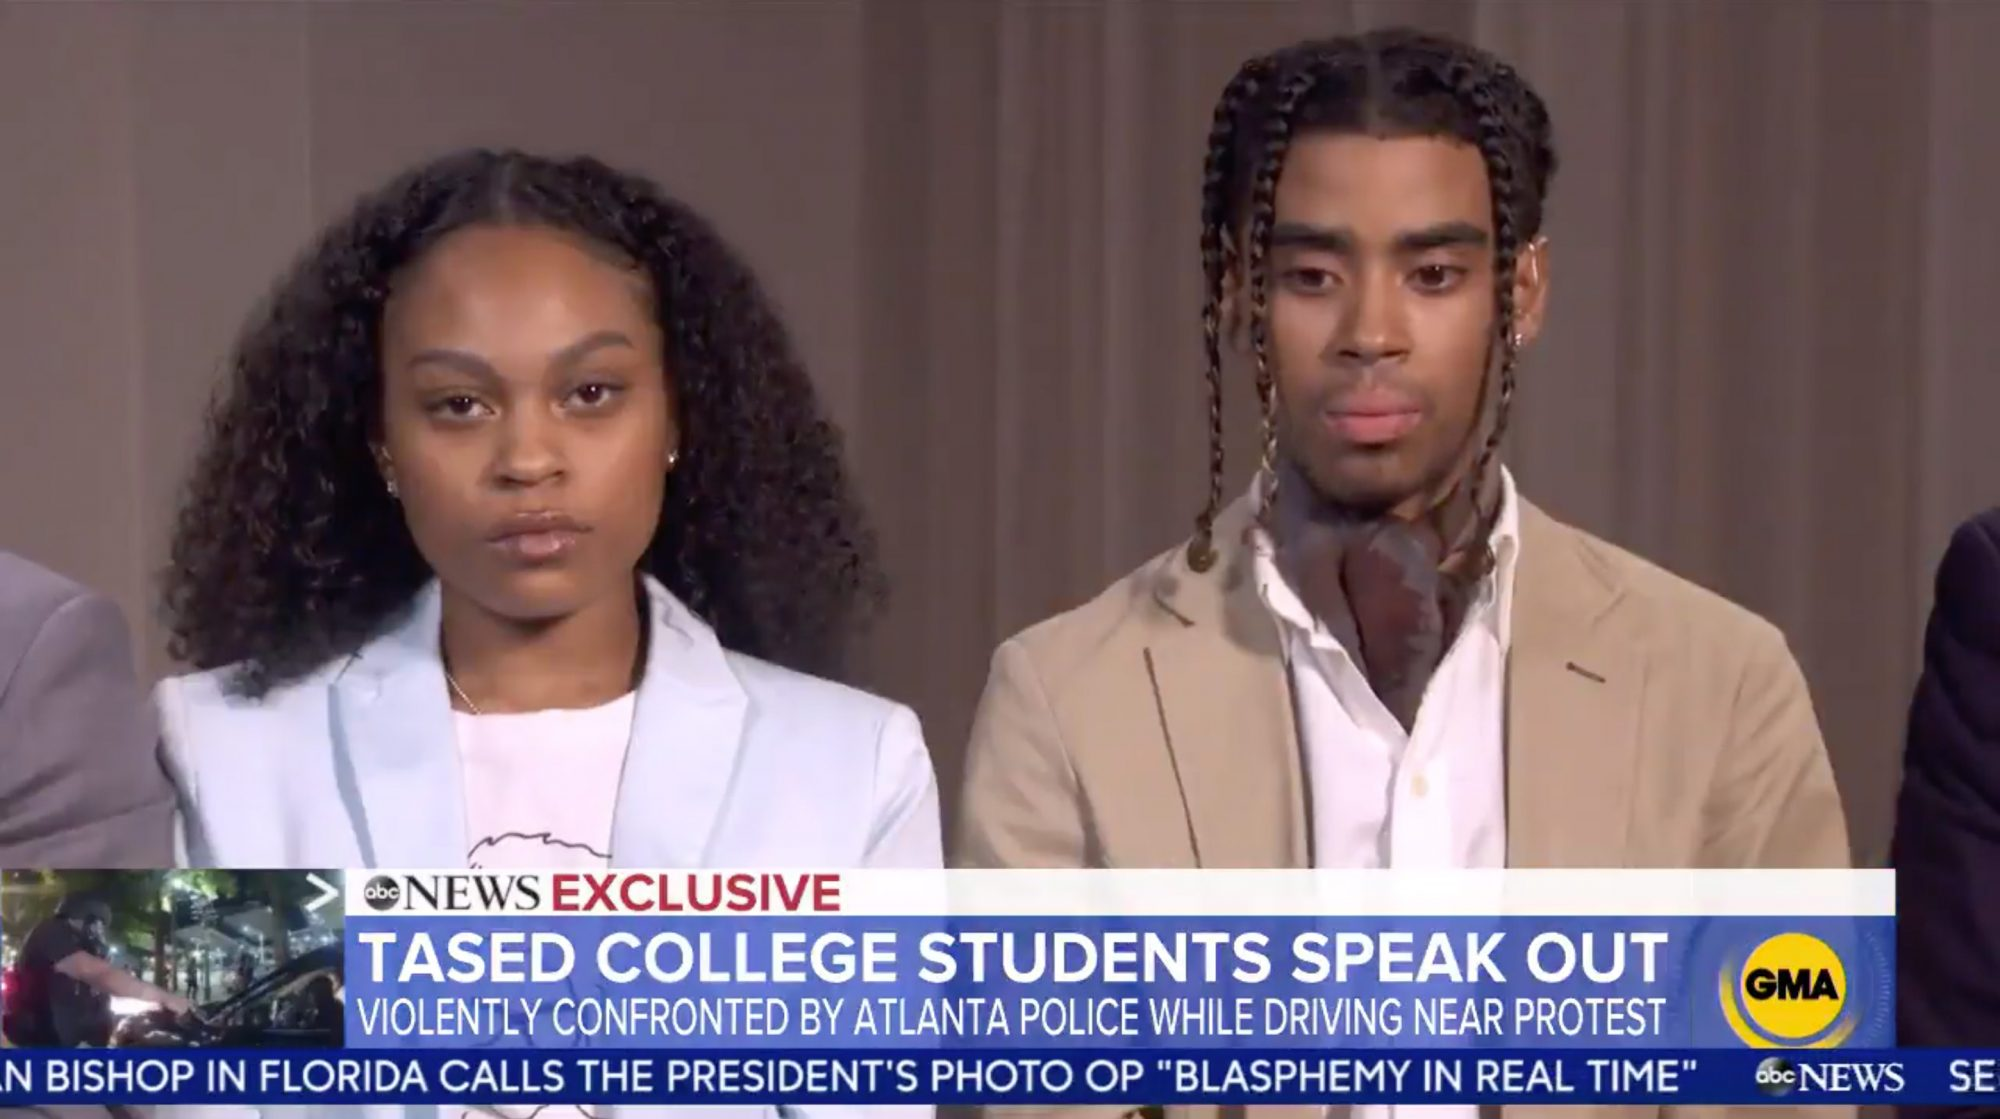 College students Taniyah Pilgrim and Messiah Young speak out after graphic video shows Atlanta police using stun guns and dragging them from their car during protest